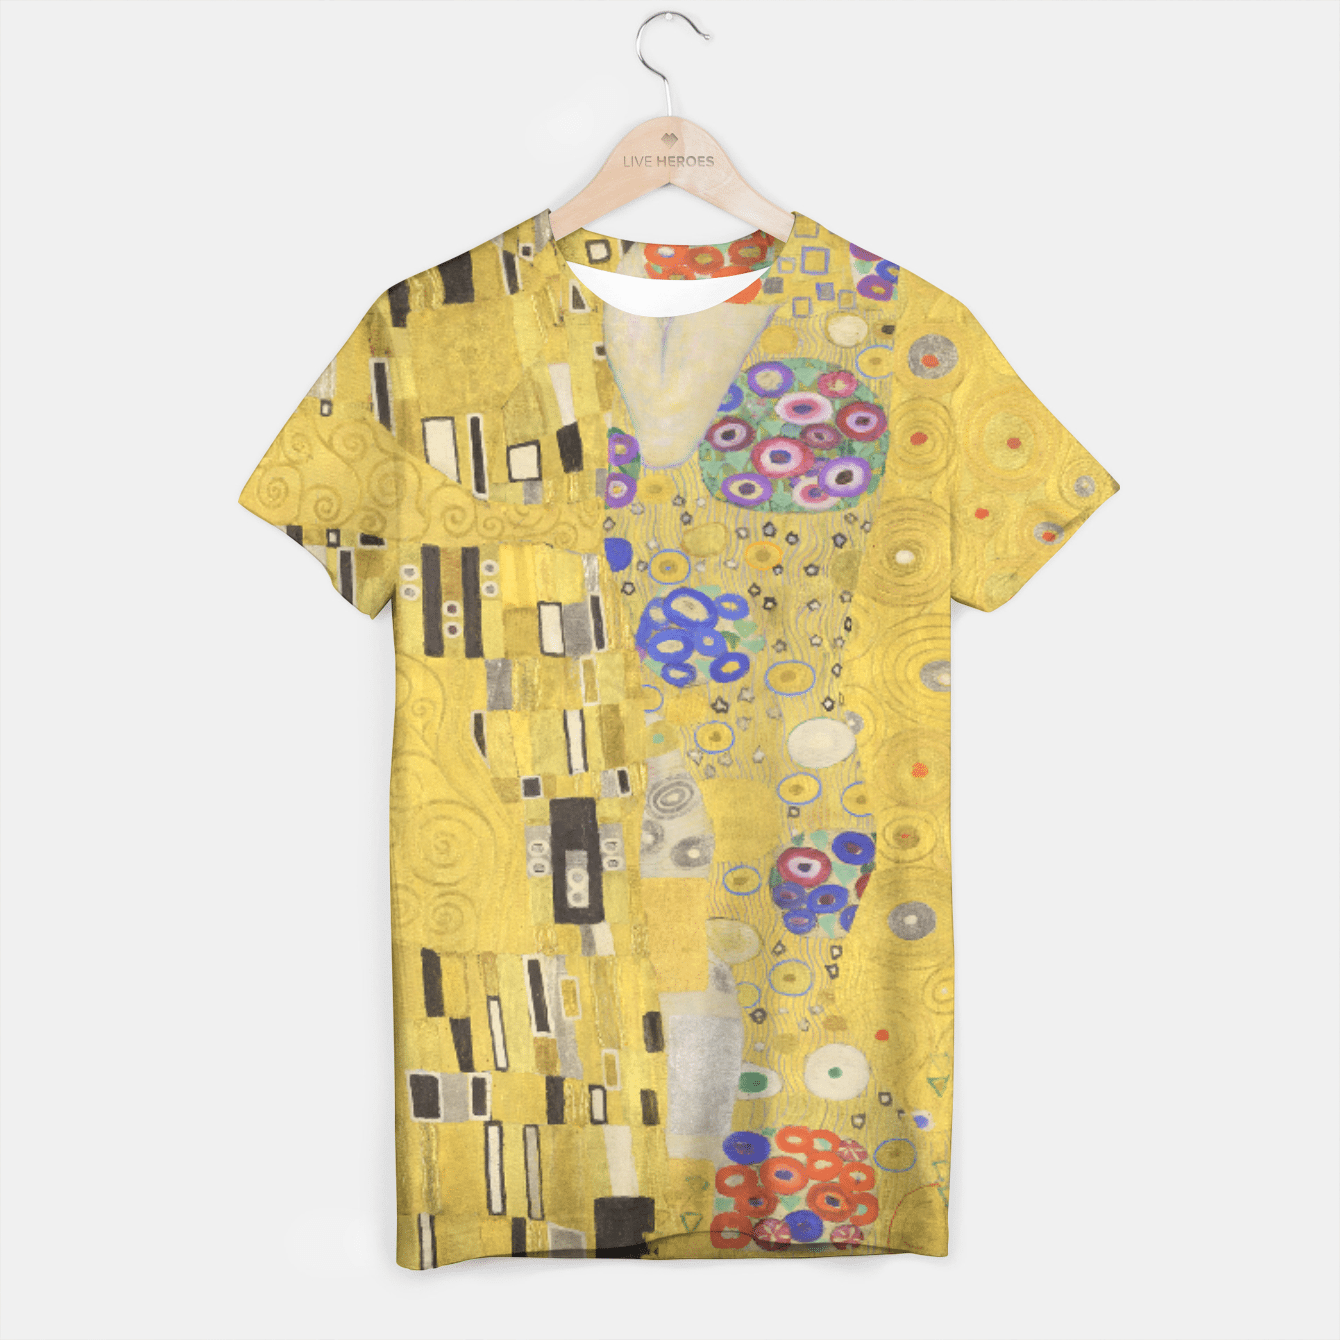 THE KiSS BY GUSTAV KLiMT T-shirt, Live Heroes